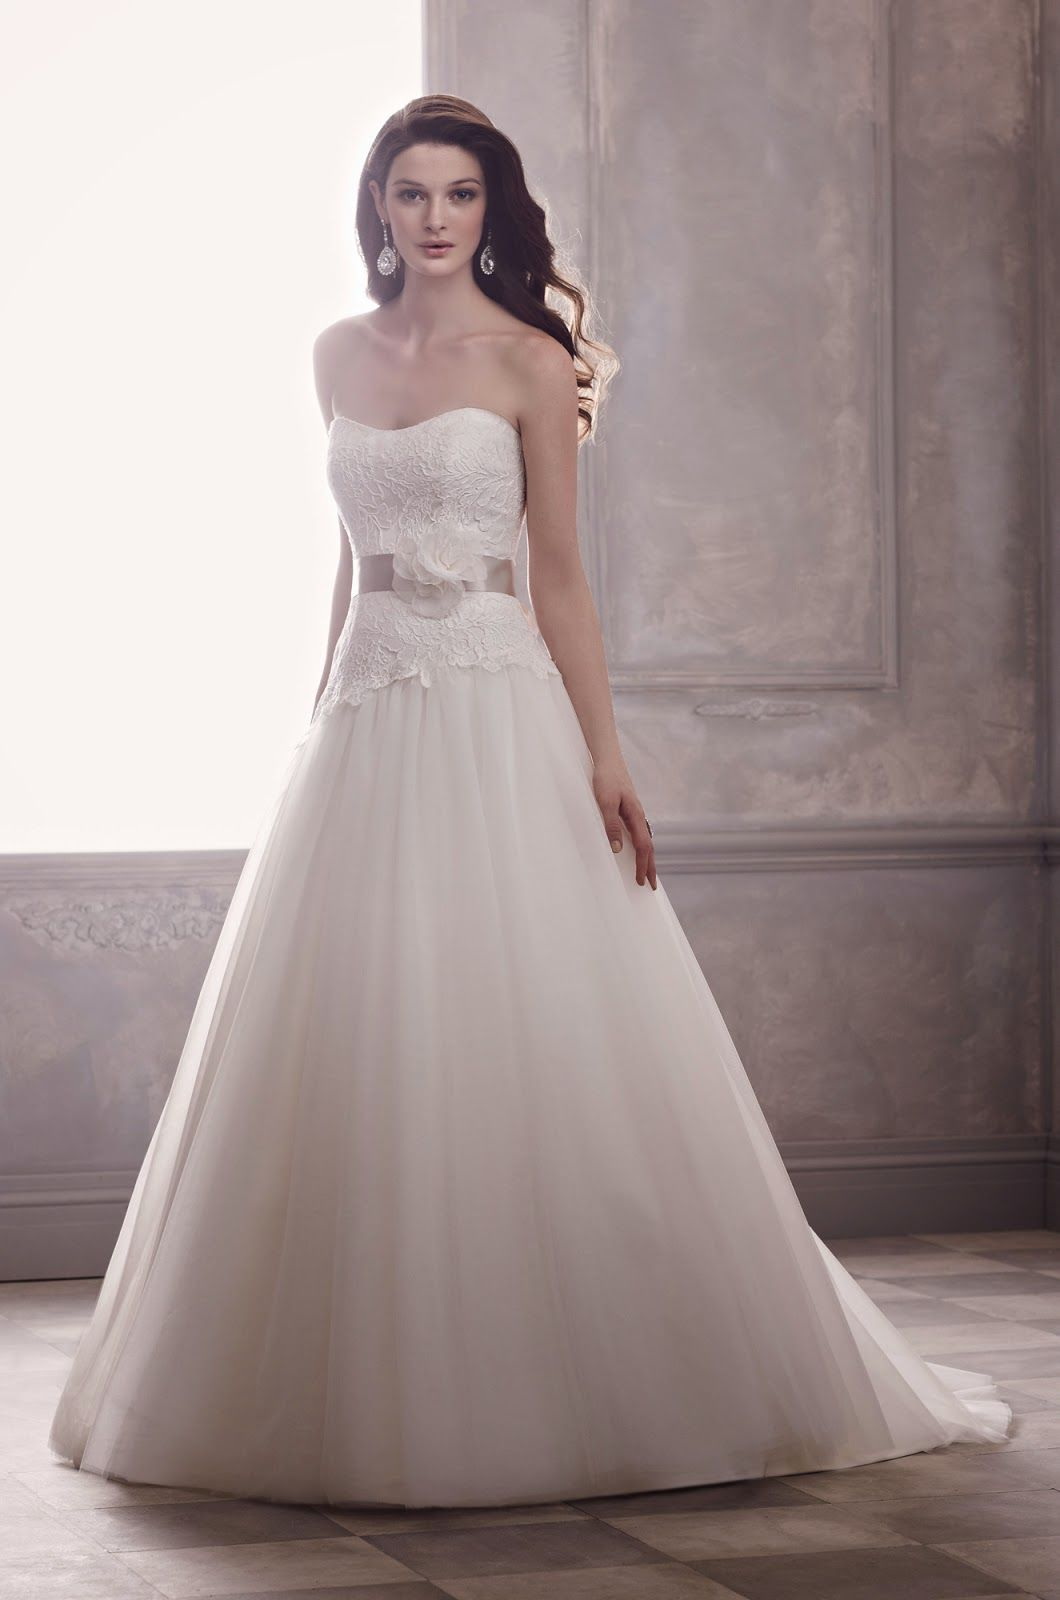 Pear Shaped Body Wedding Dress Pear Shaped Wedding Dress Petite Wedding Dress Wedding Dresses